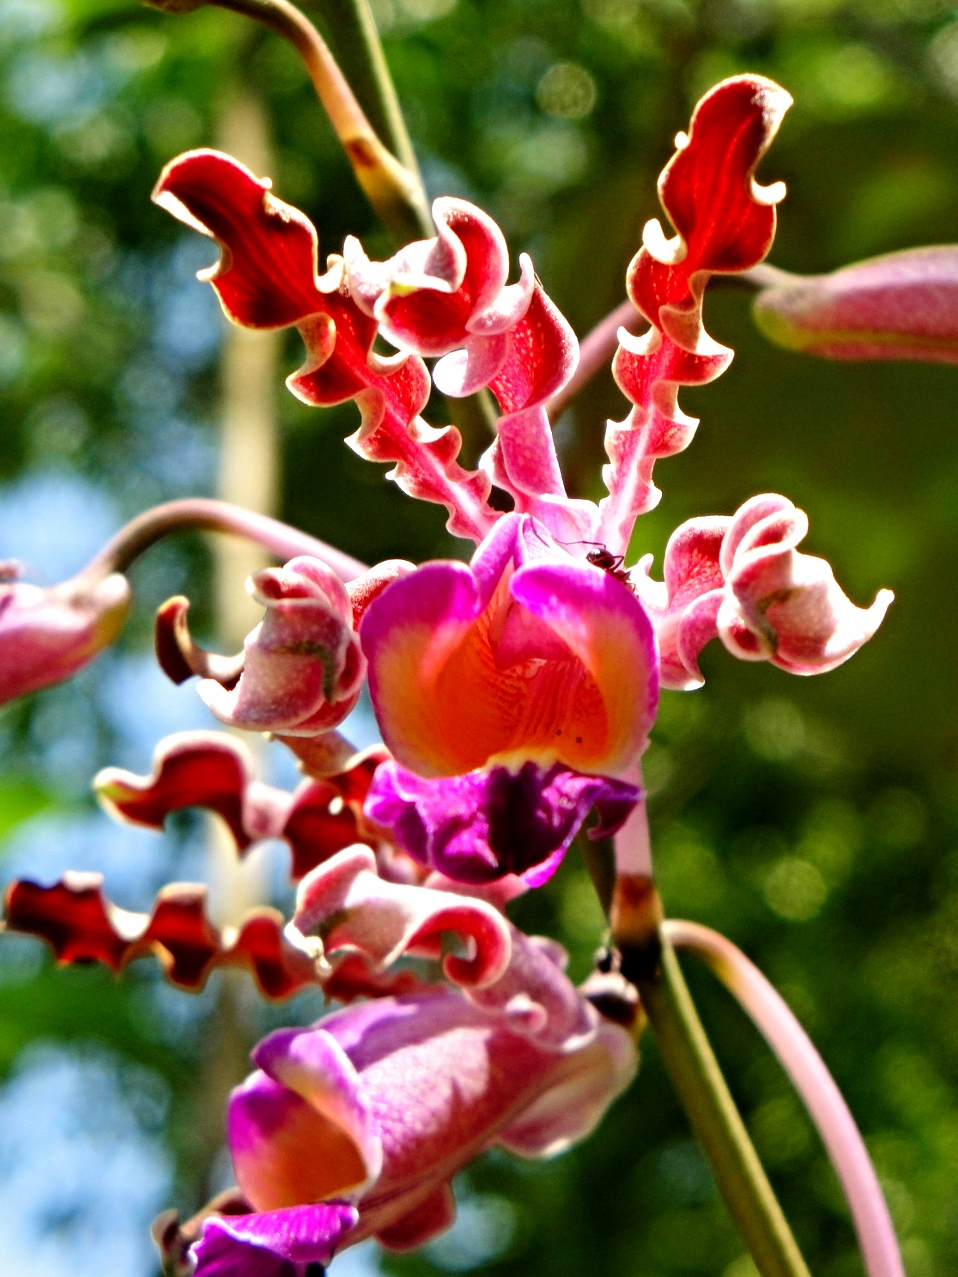 Belize Orchids - Belize Vacation Packages - SabreWing Travel - Photo by David Berg